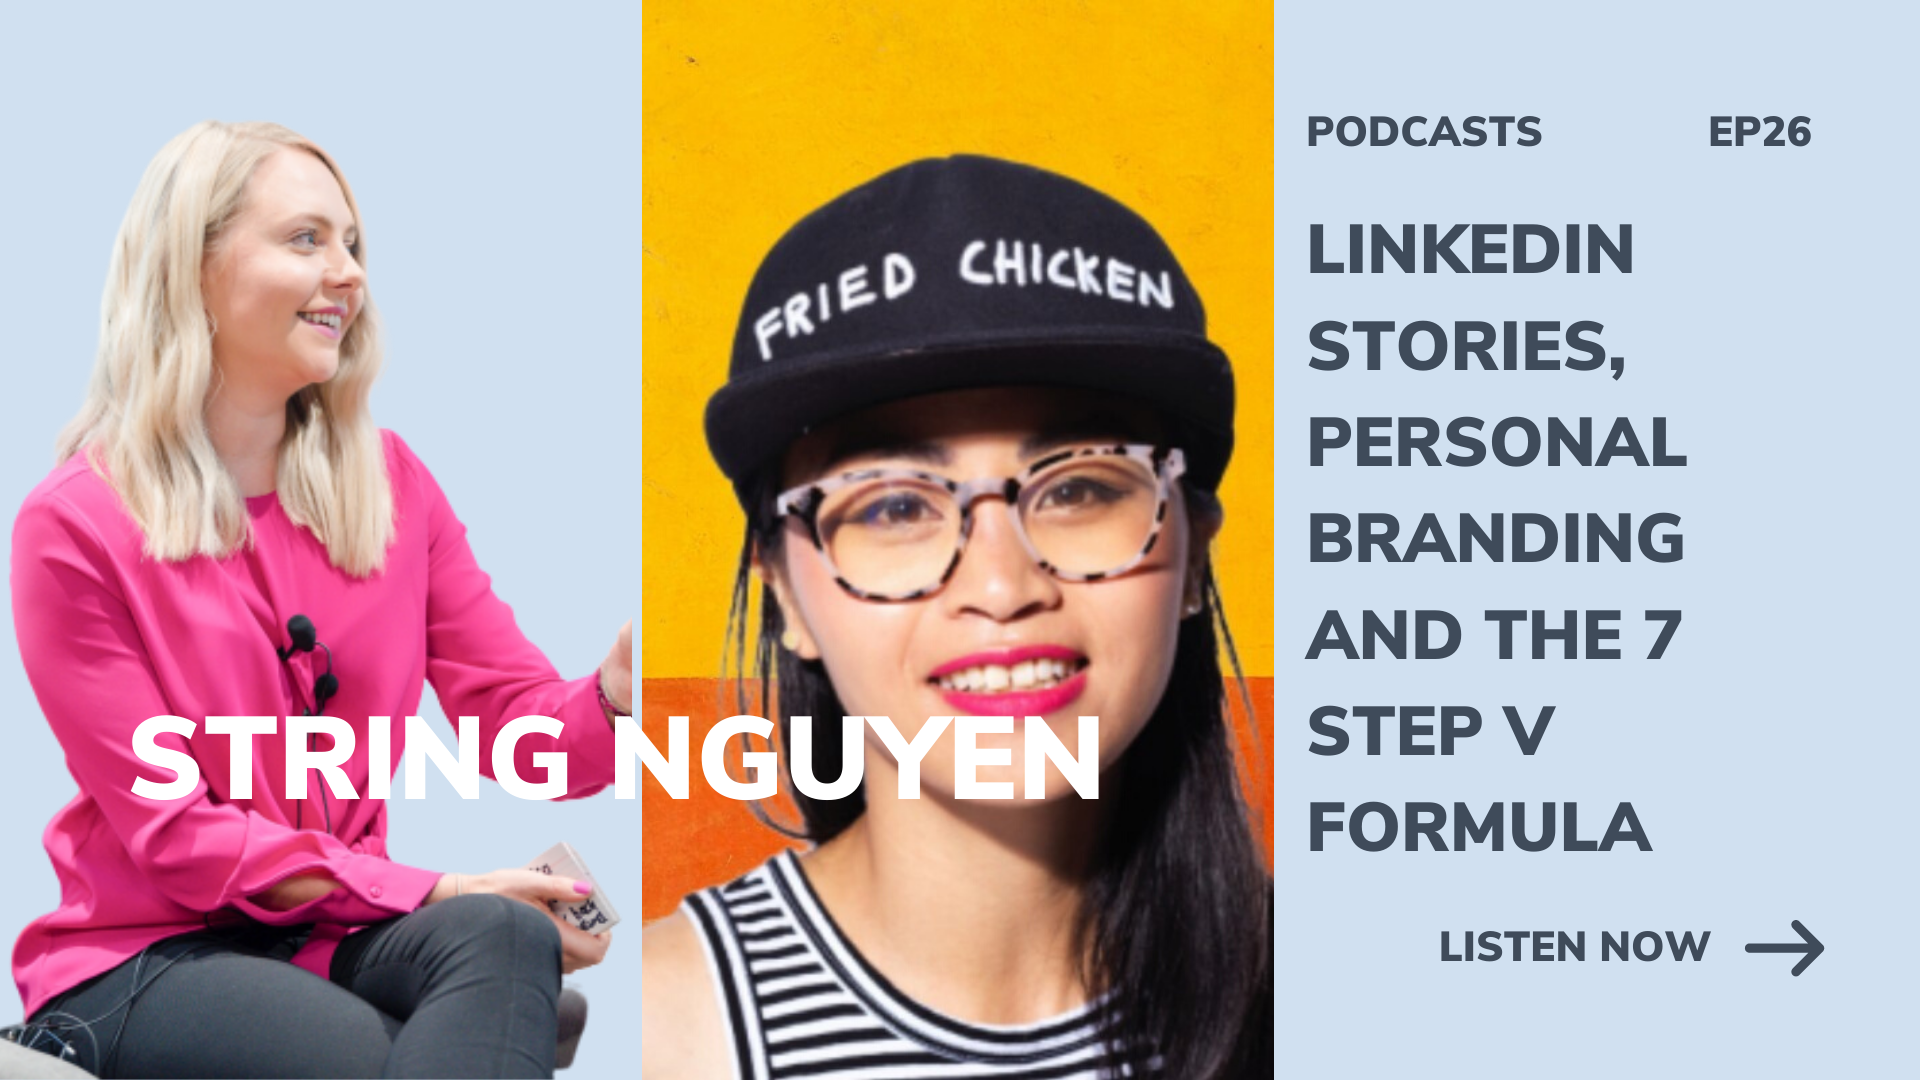 linkedin stories, personal branding and the 7 step v formula